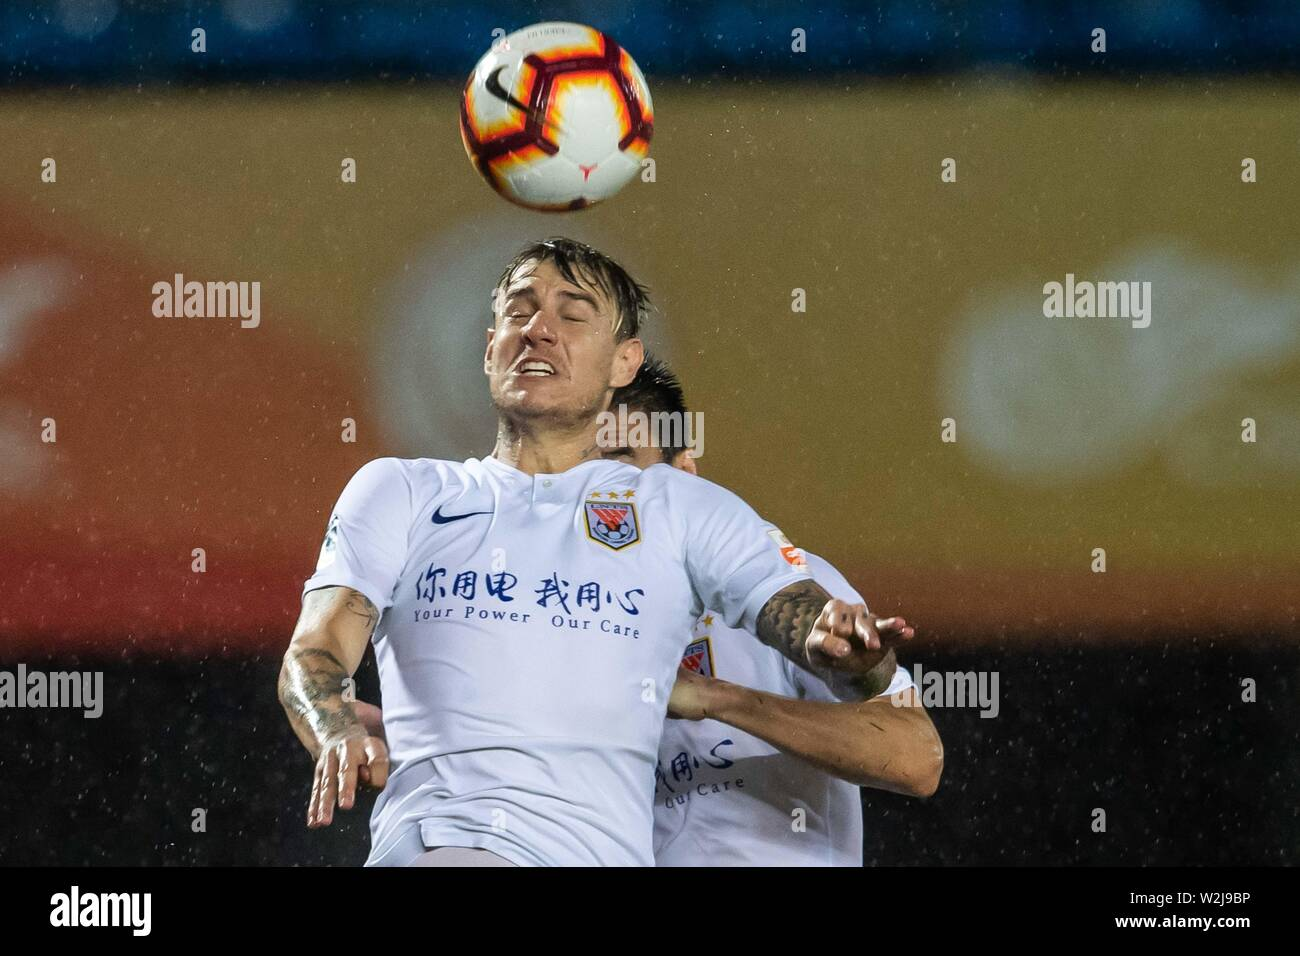 Brazilian football player Roger Krug Guedes, known as Roger Guedes, top, of Shandong Luneng Taishan heads the ball against Beijing Renhe in their 16th round match during the 2019 Chinese Football Association Super League (CSL) in Beijing, China, 7 July 2019. Shandong Luneng Taishan defeated Beijing Renhe 2-0. Stock Photo